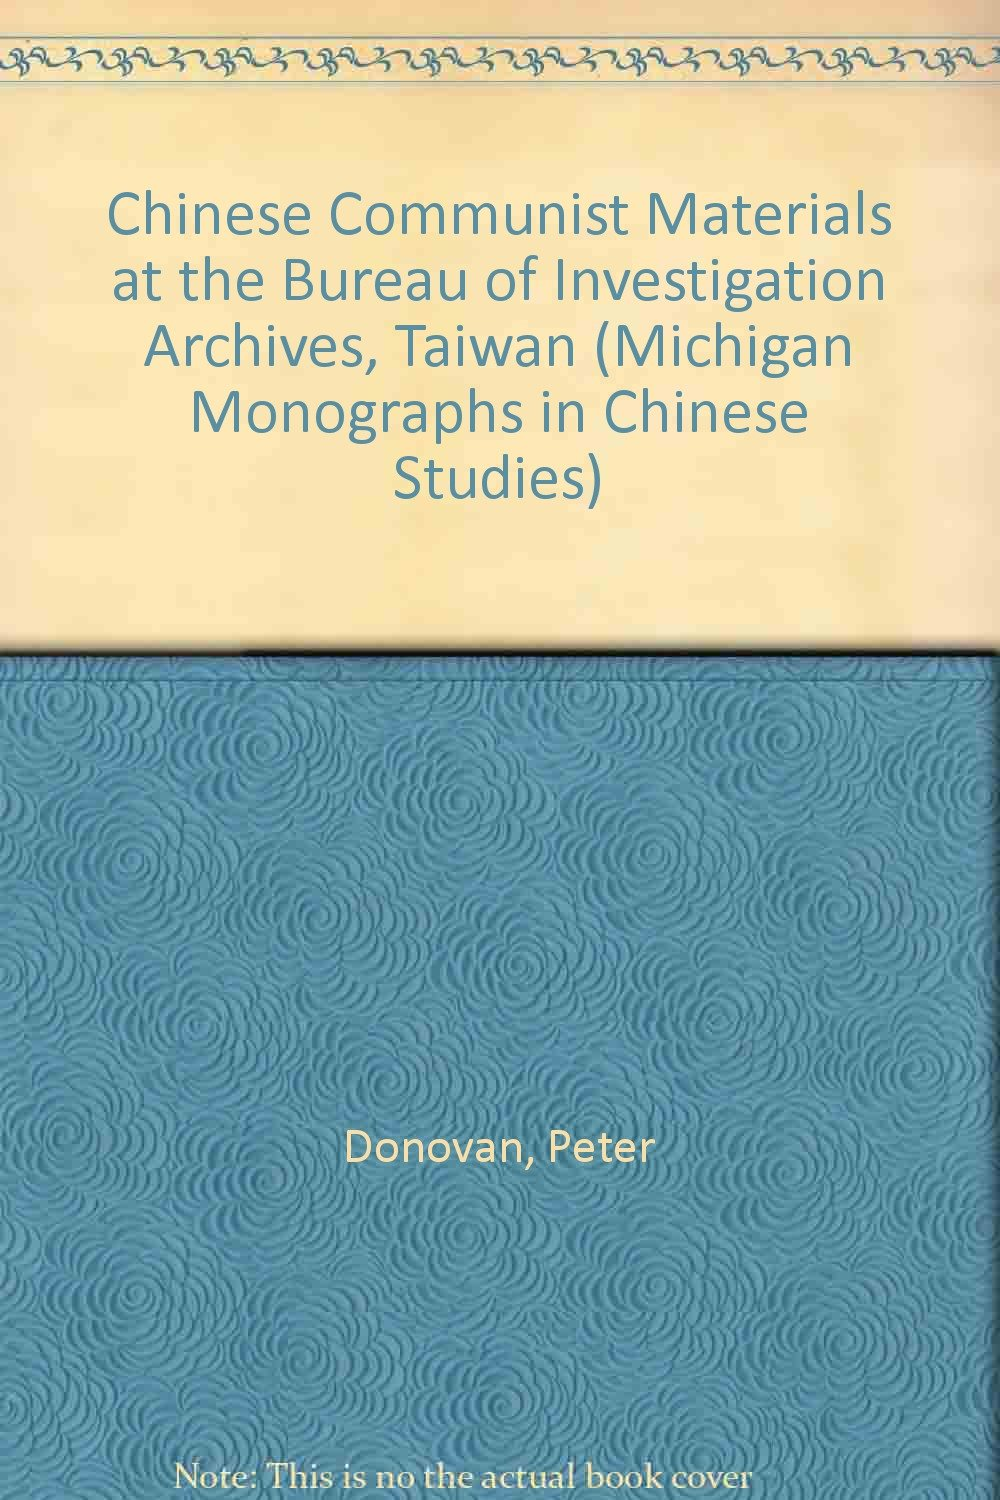 Image for Chinese Communist Materials at the Bureau of Investigation Archives, Taiwan (Michigan Monographs in Chinese Studies)